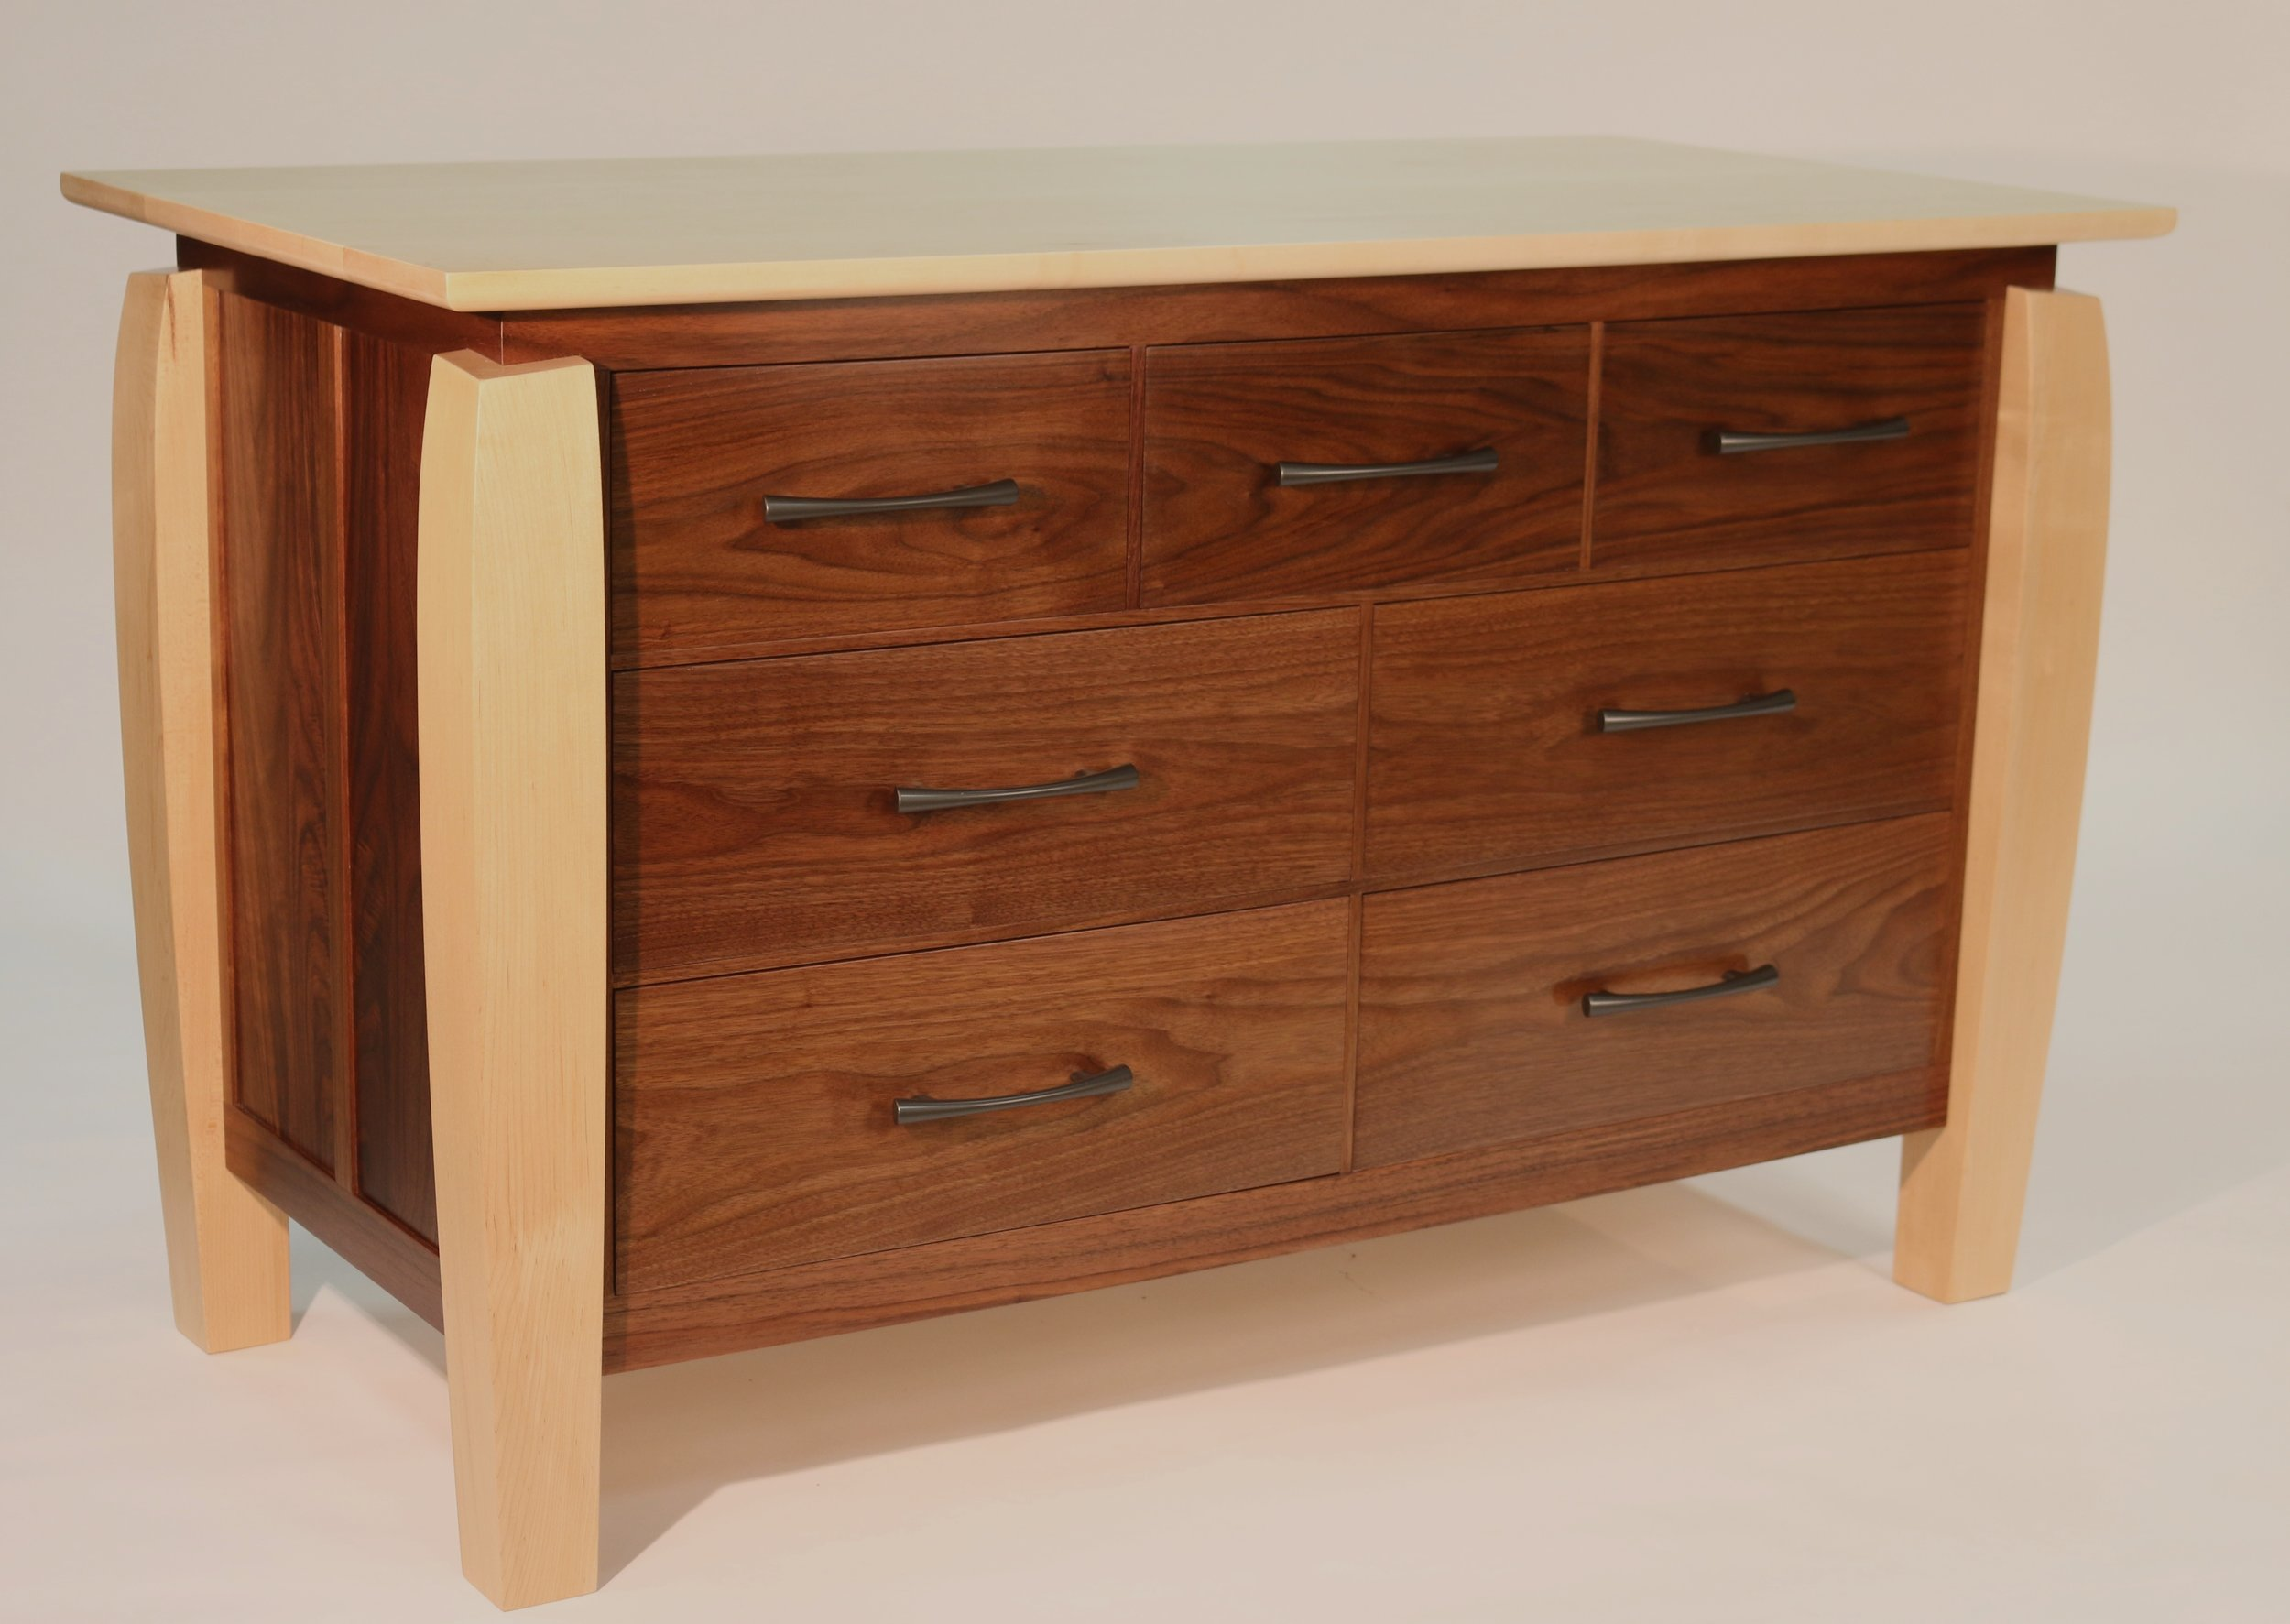 Walnut Dresser front view